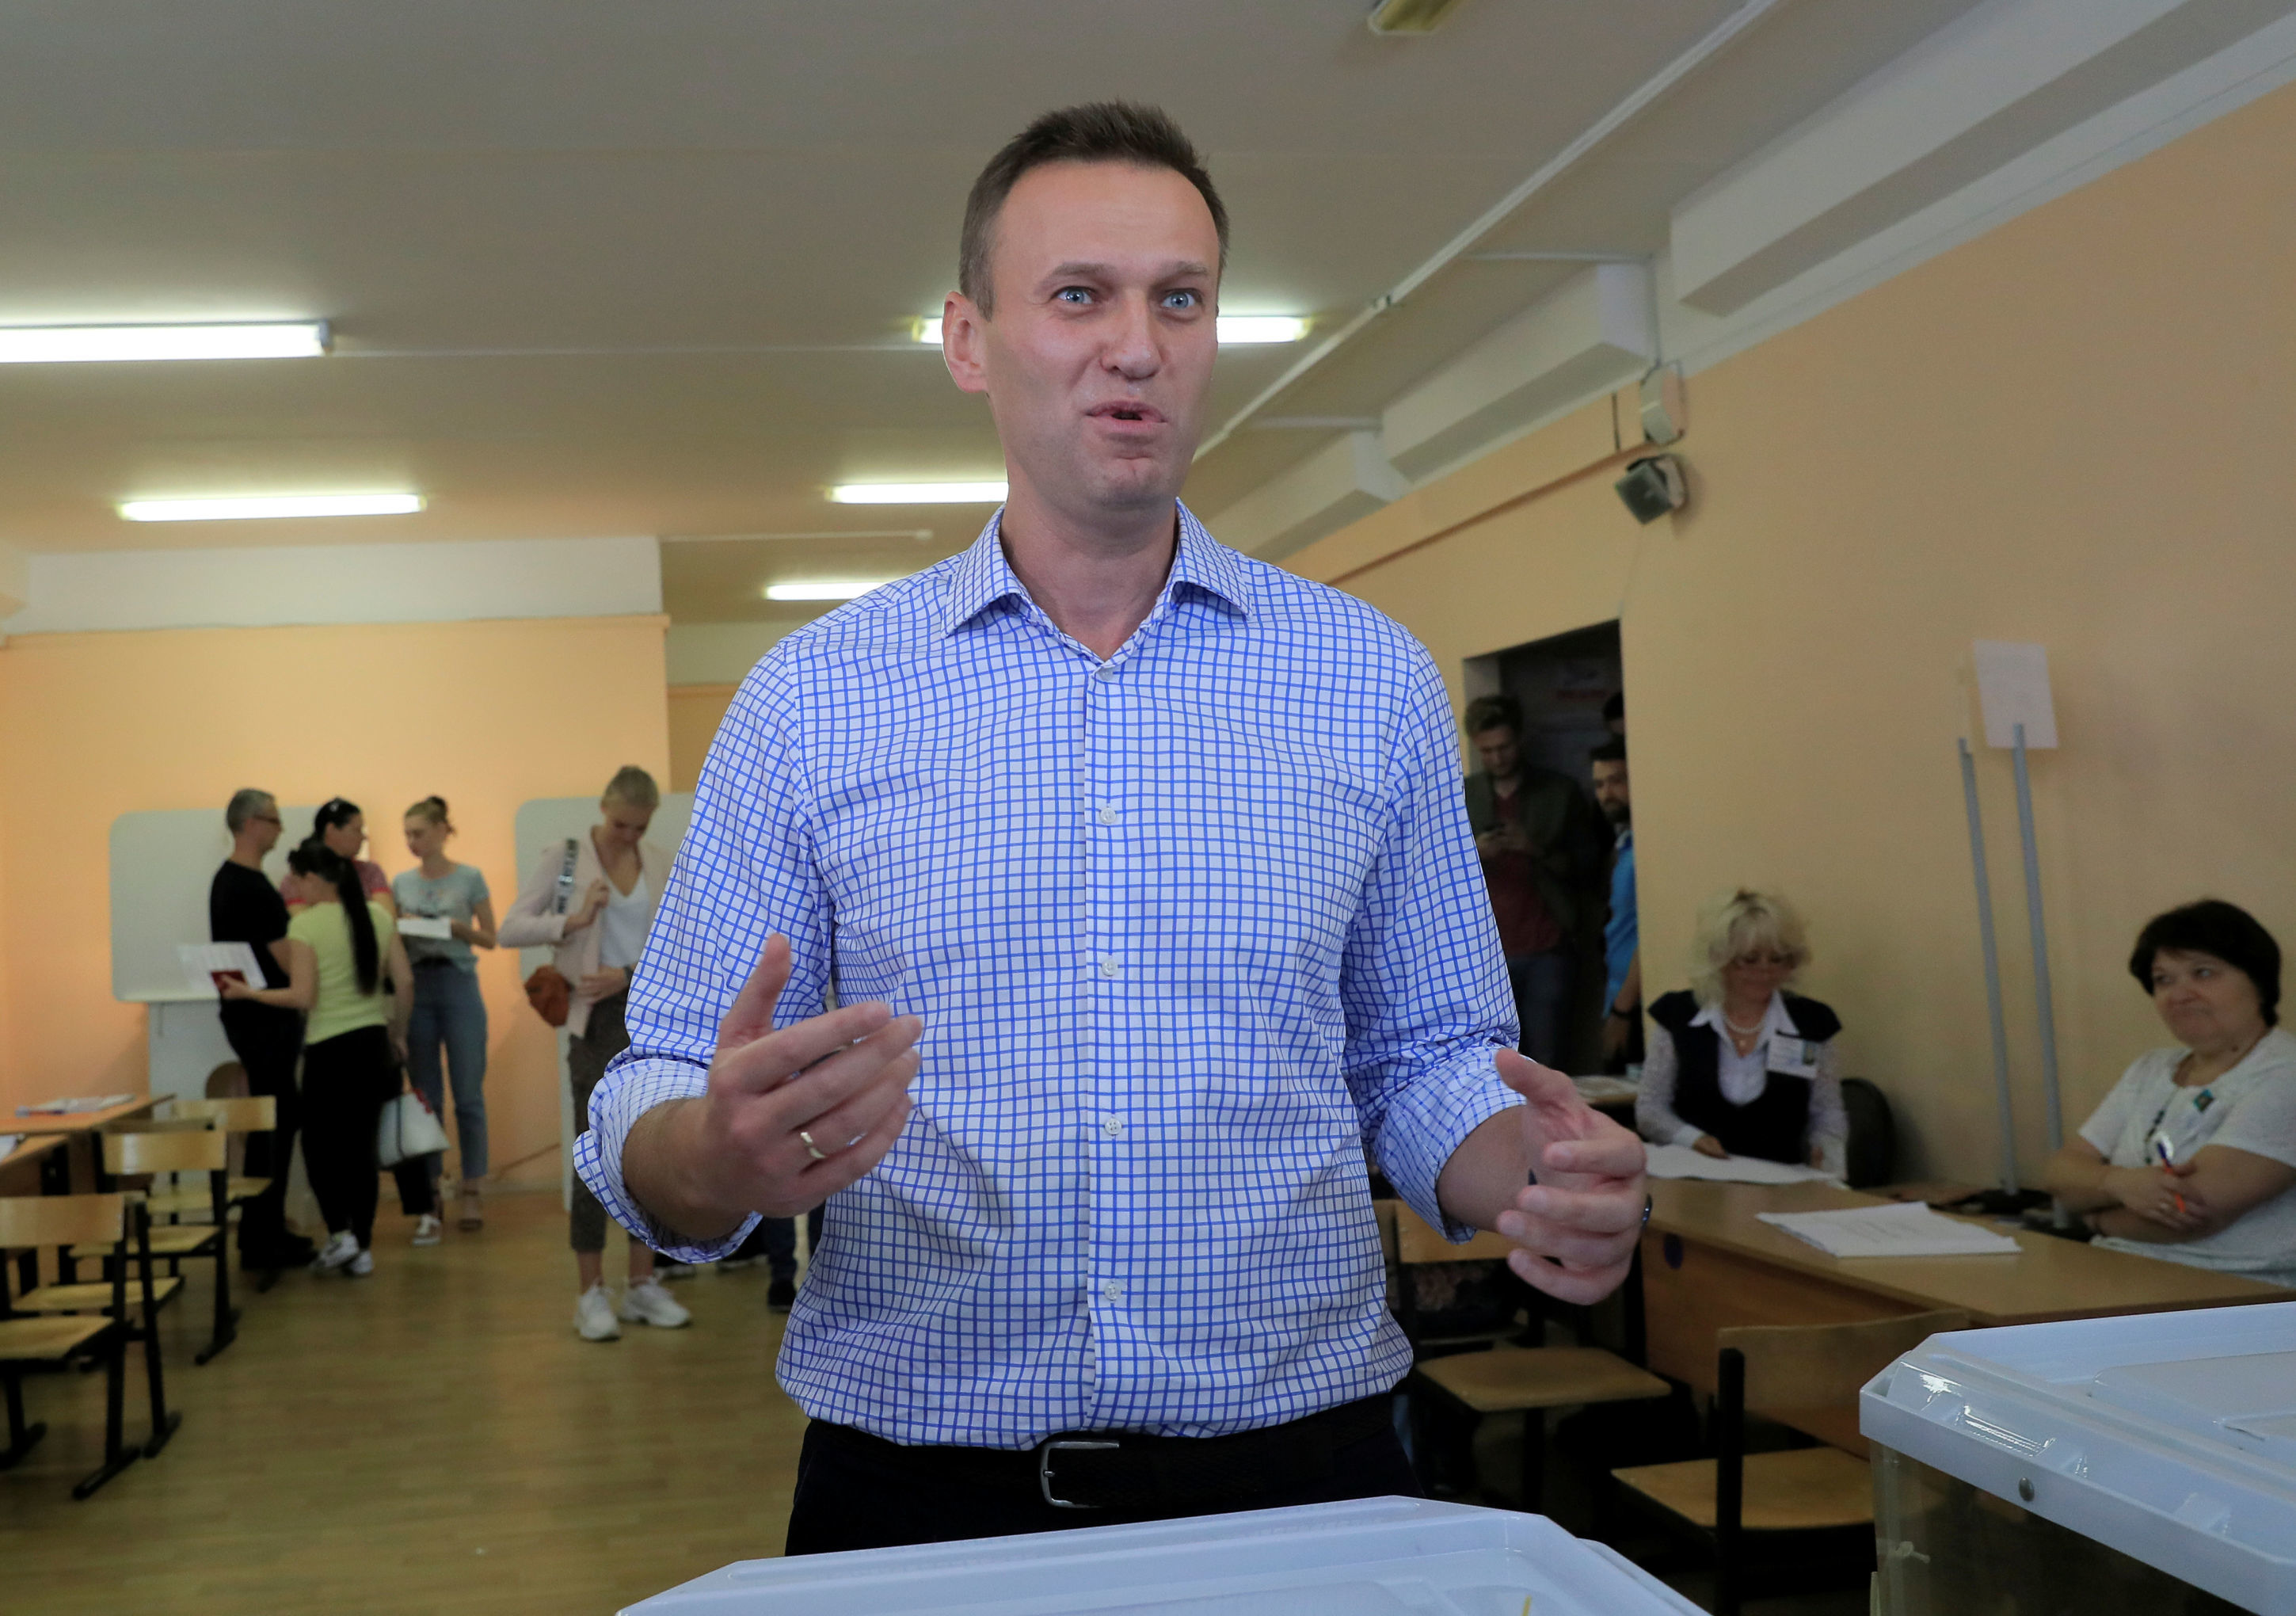 FILE PHOTO: Russian opposition leader Alexei Navalny stands near a ballot box at a polling station during the Moscow city parliament election in Moscow, Russia September 8, 2019